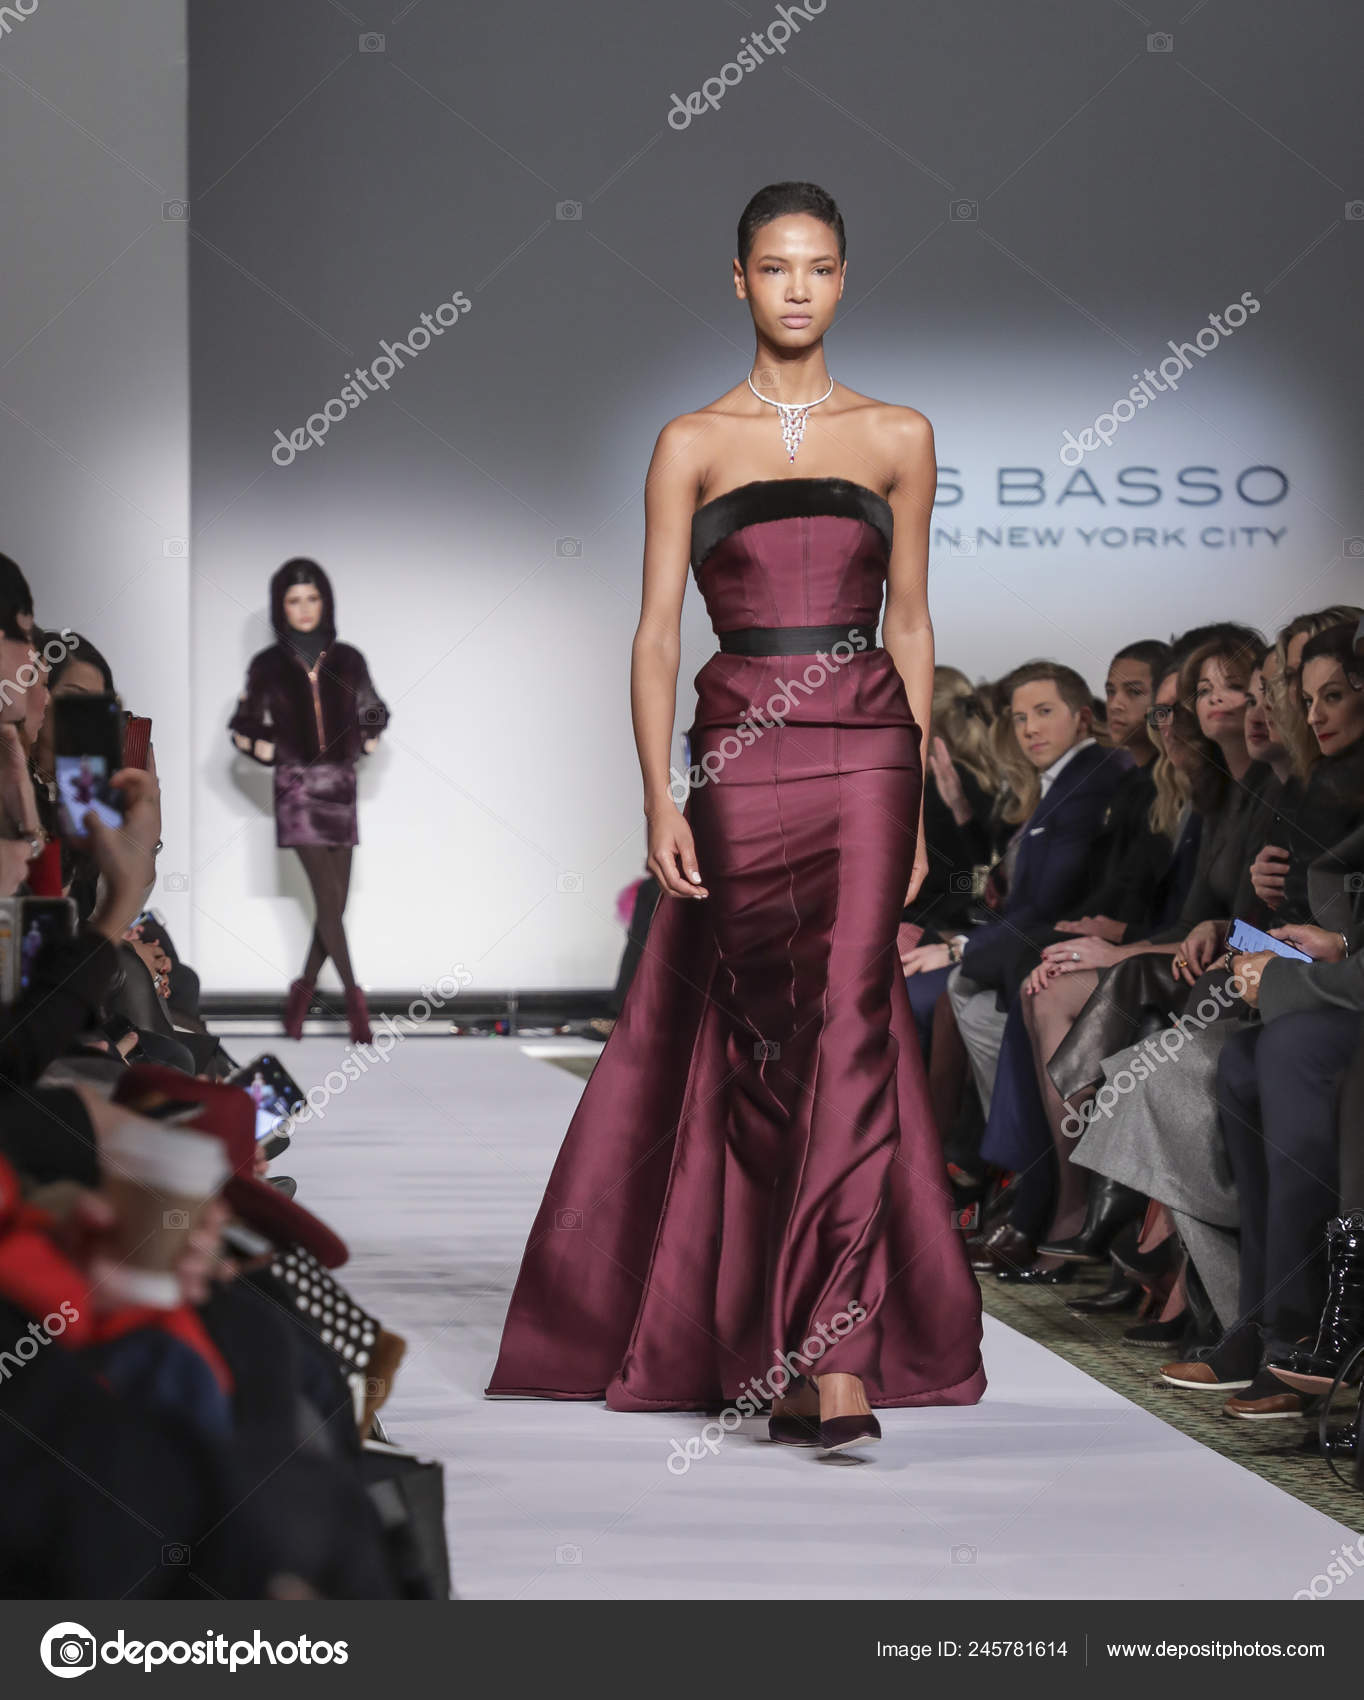 New York Usa February 2019 Model Walks Runway Dennis Basso